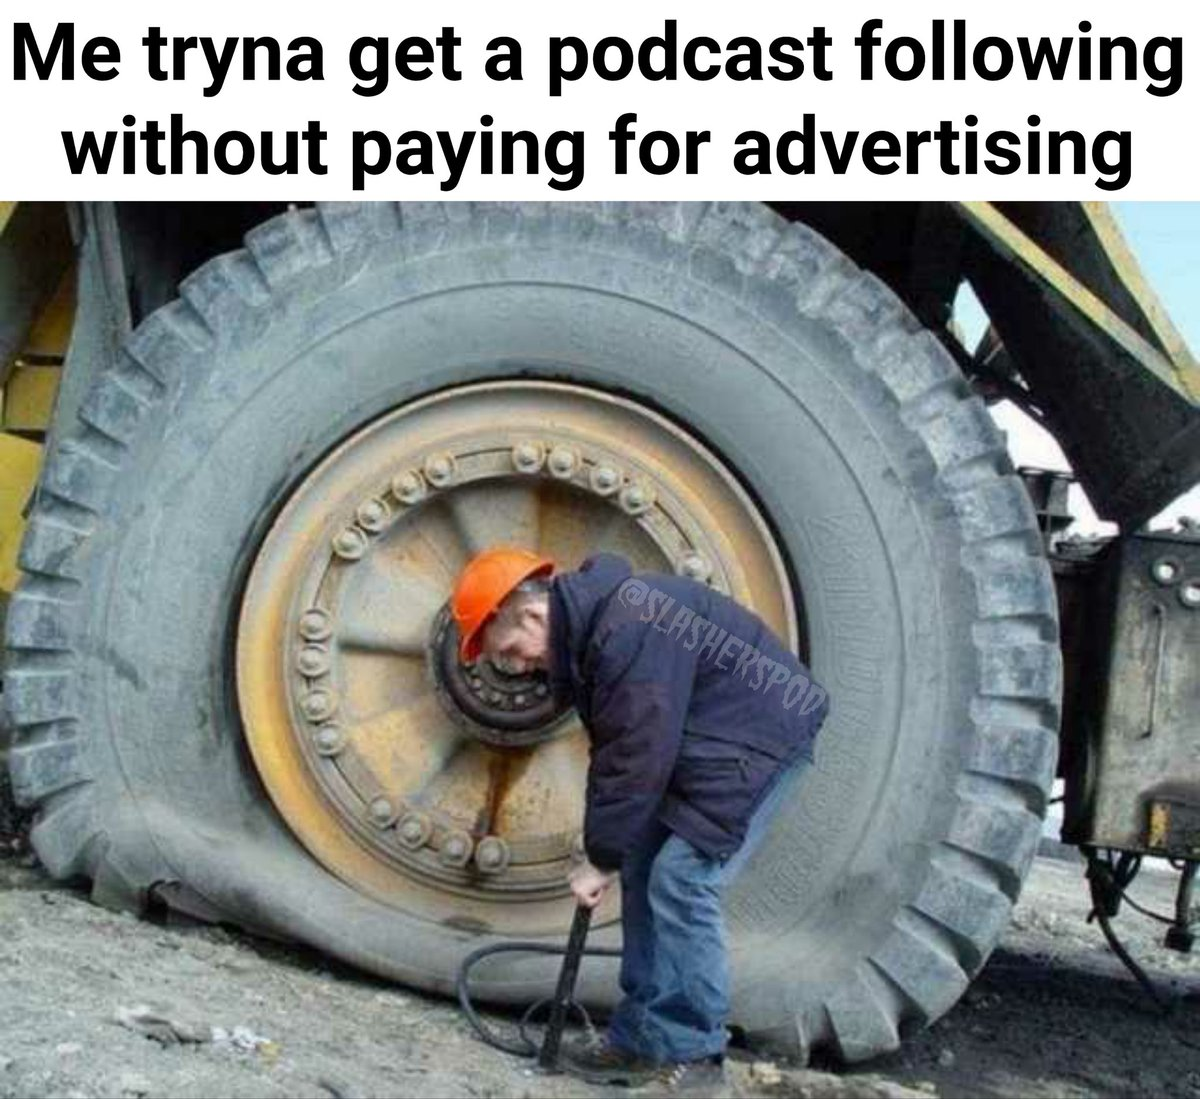 Only way Instagram getting money from me is selling my personal data. Sorry, suckers- it's just #memes  #podcast #podcasting #videopodcast #moviepodcast #comedypodcast #podcaster #movie #moviereview #meme #networkingpic.twitter.com/SKtaBmqwXL